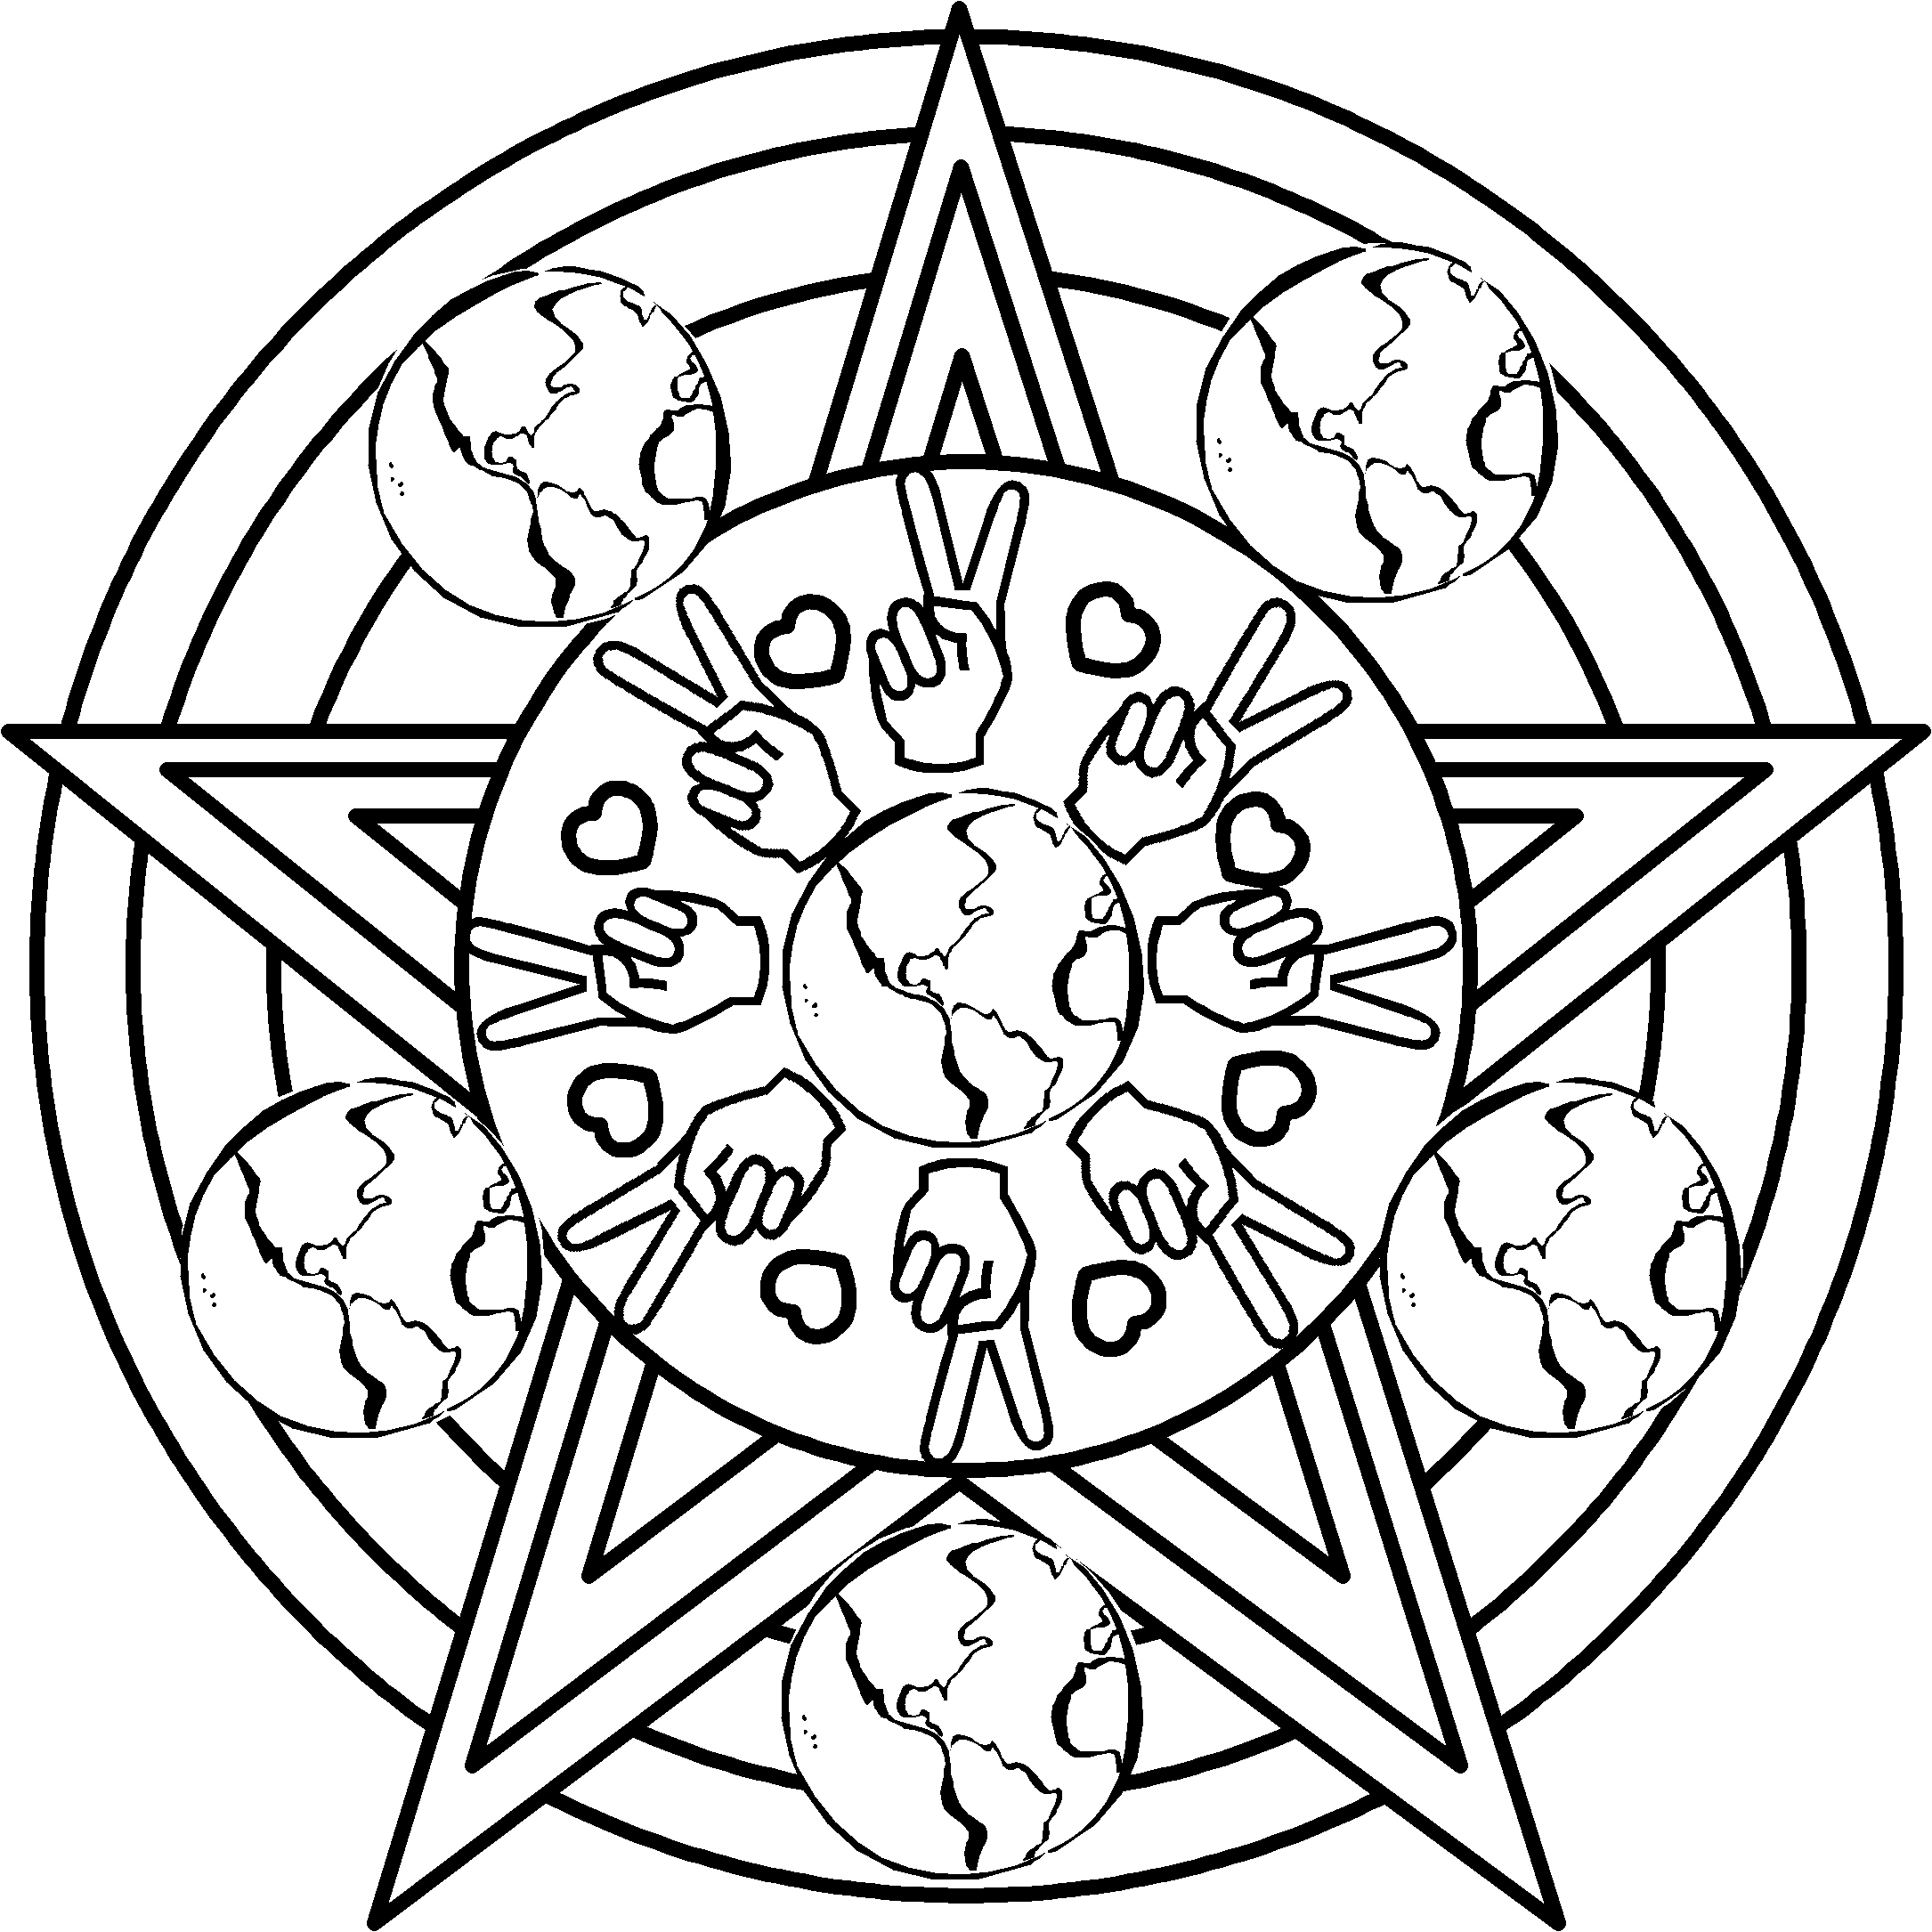 peace coloring pages peace coloring pages to download and print for free pages peace coloring 1 1